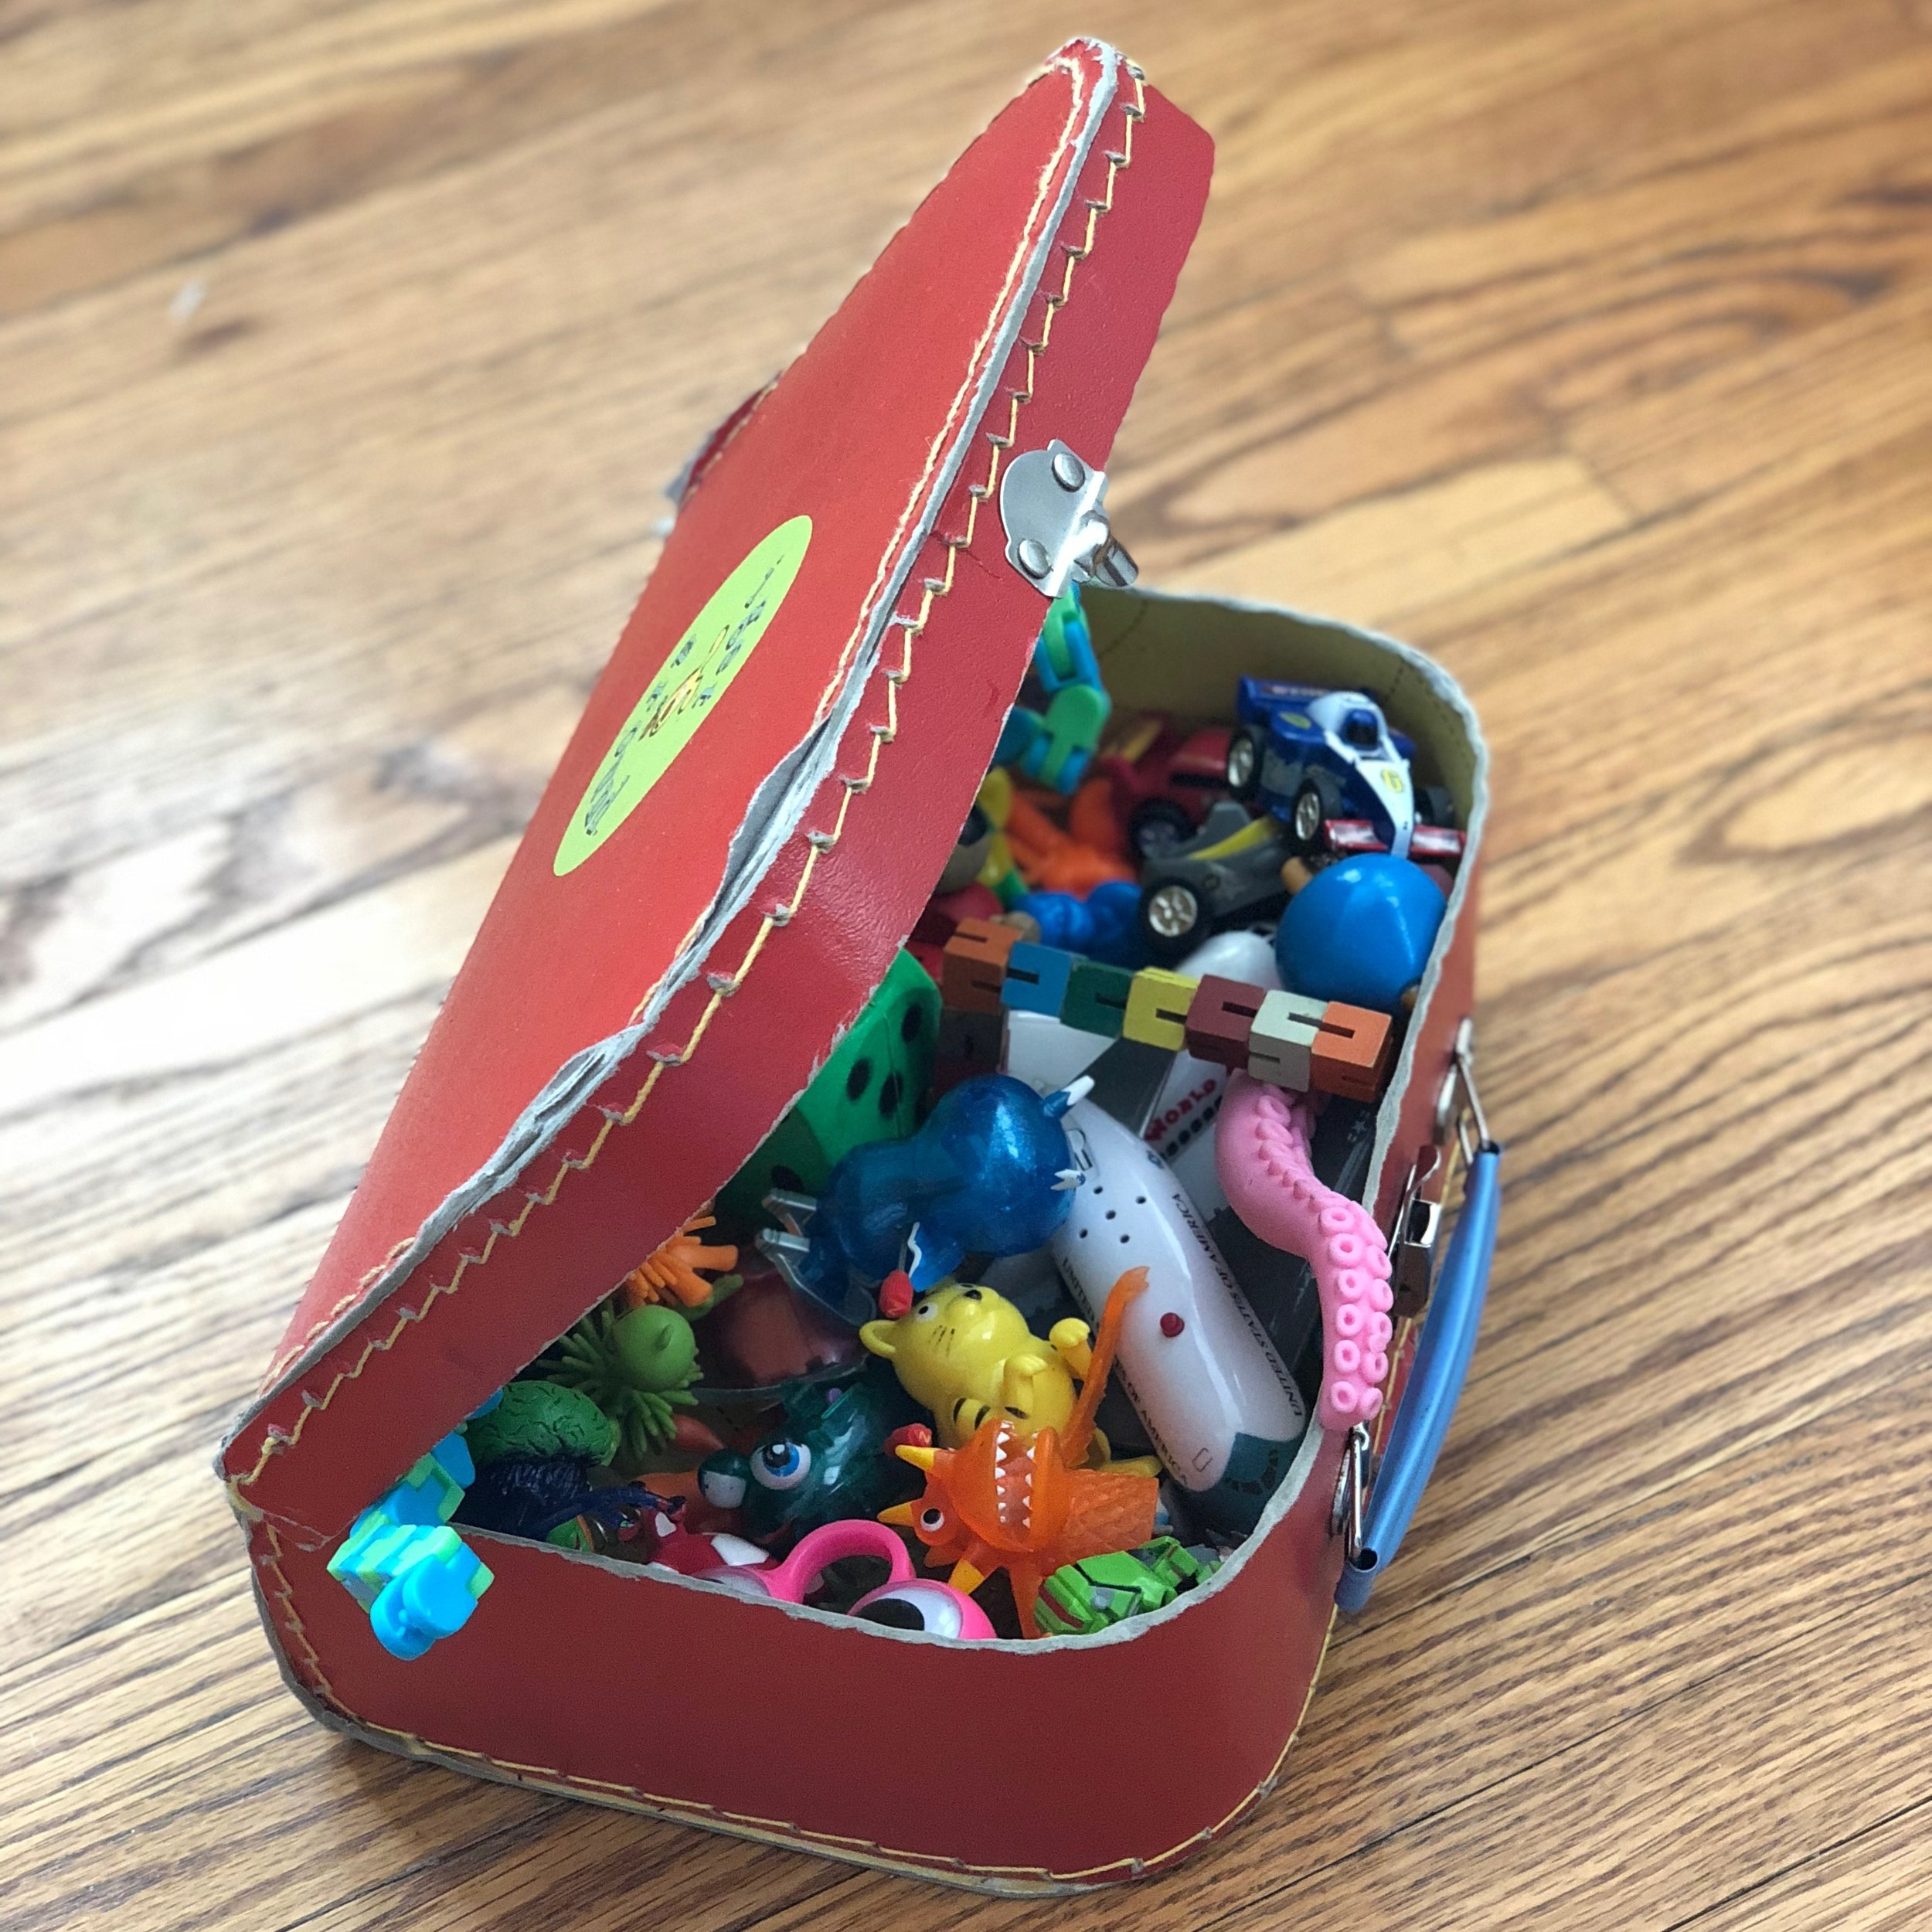 Junk - Enter Oriental Trading. We keep a luggage case filled with an assortment of jumping plastic, wind-up toys, vending machine finger puppets, Chinese handcuffs... you get the idea. We call this box the